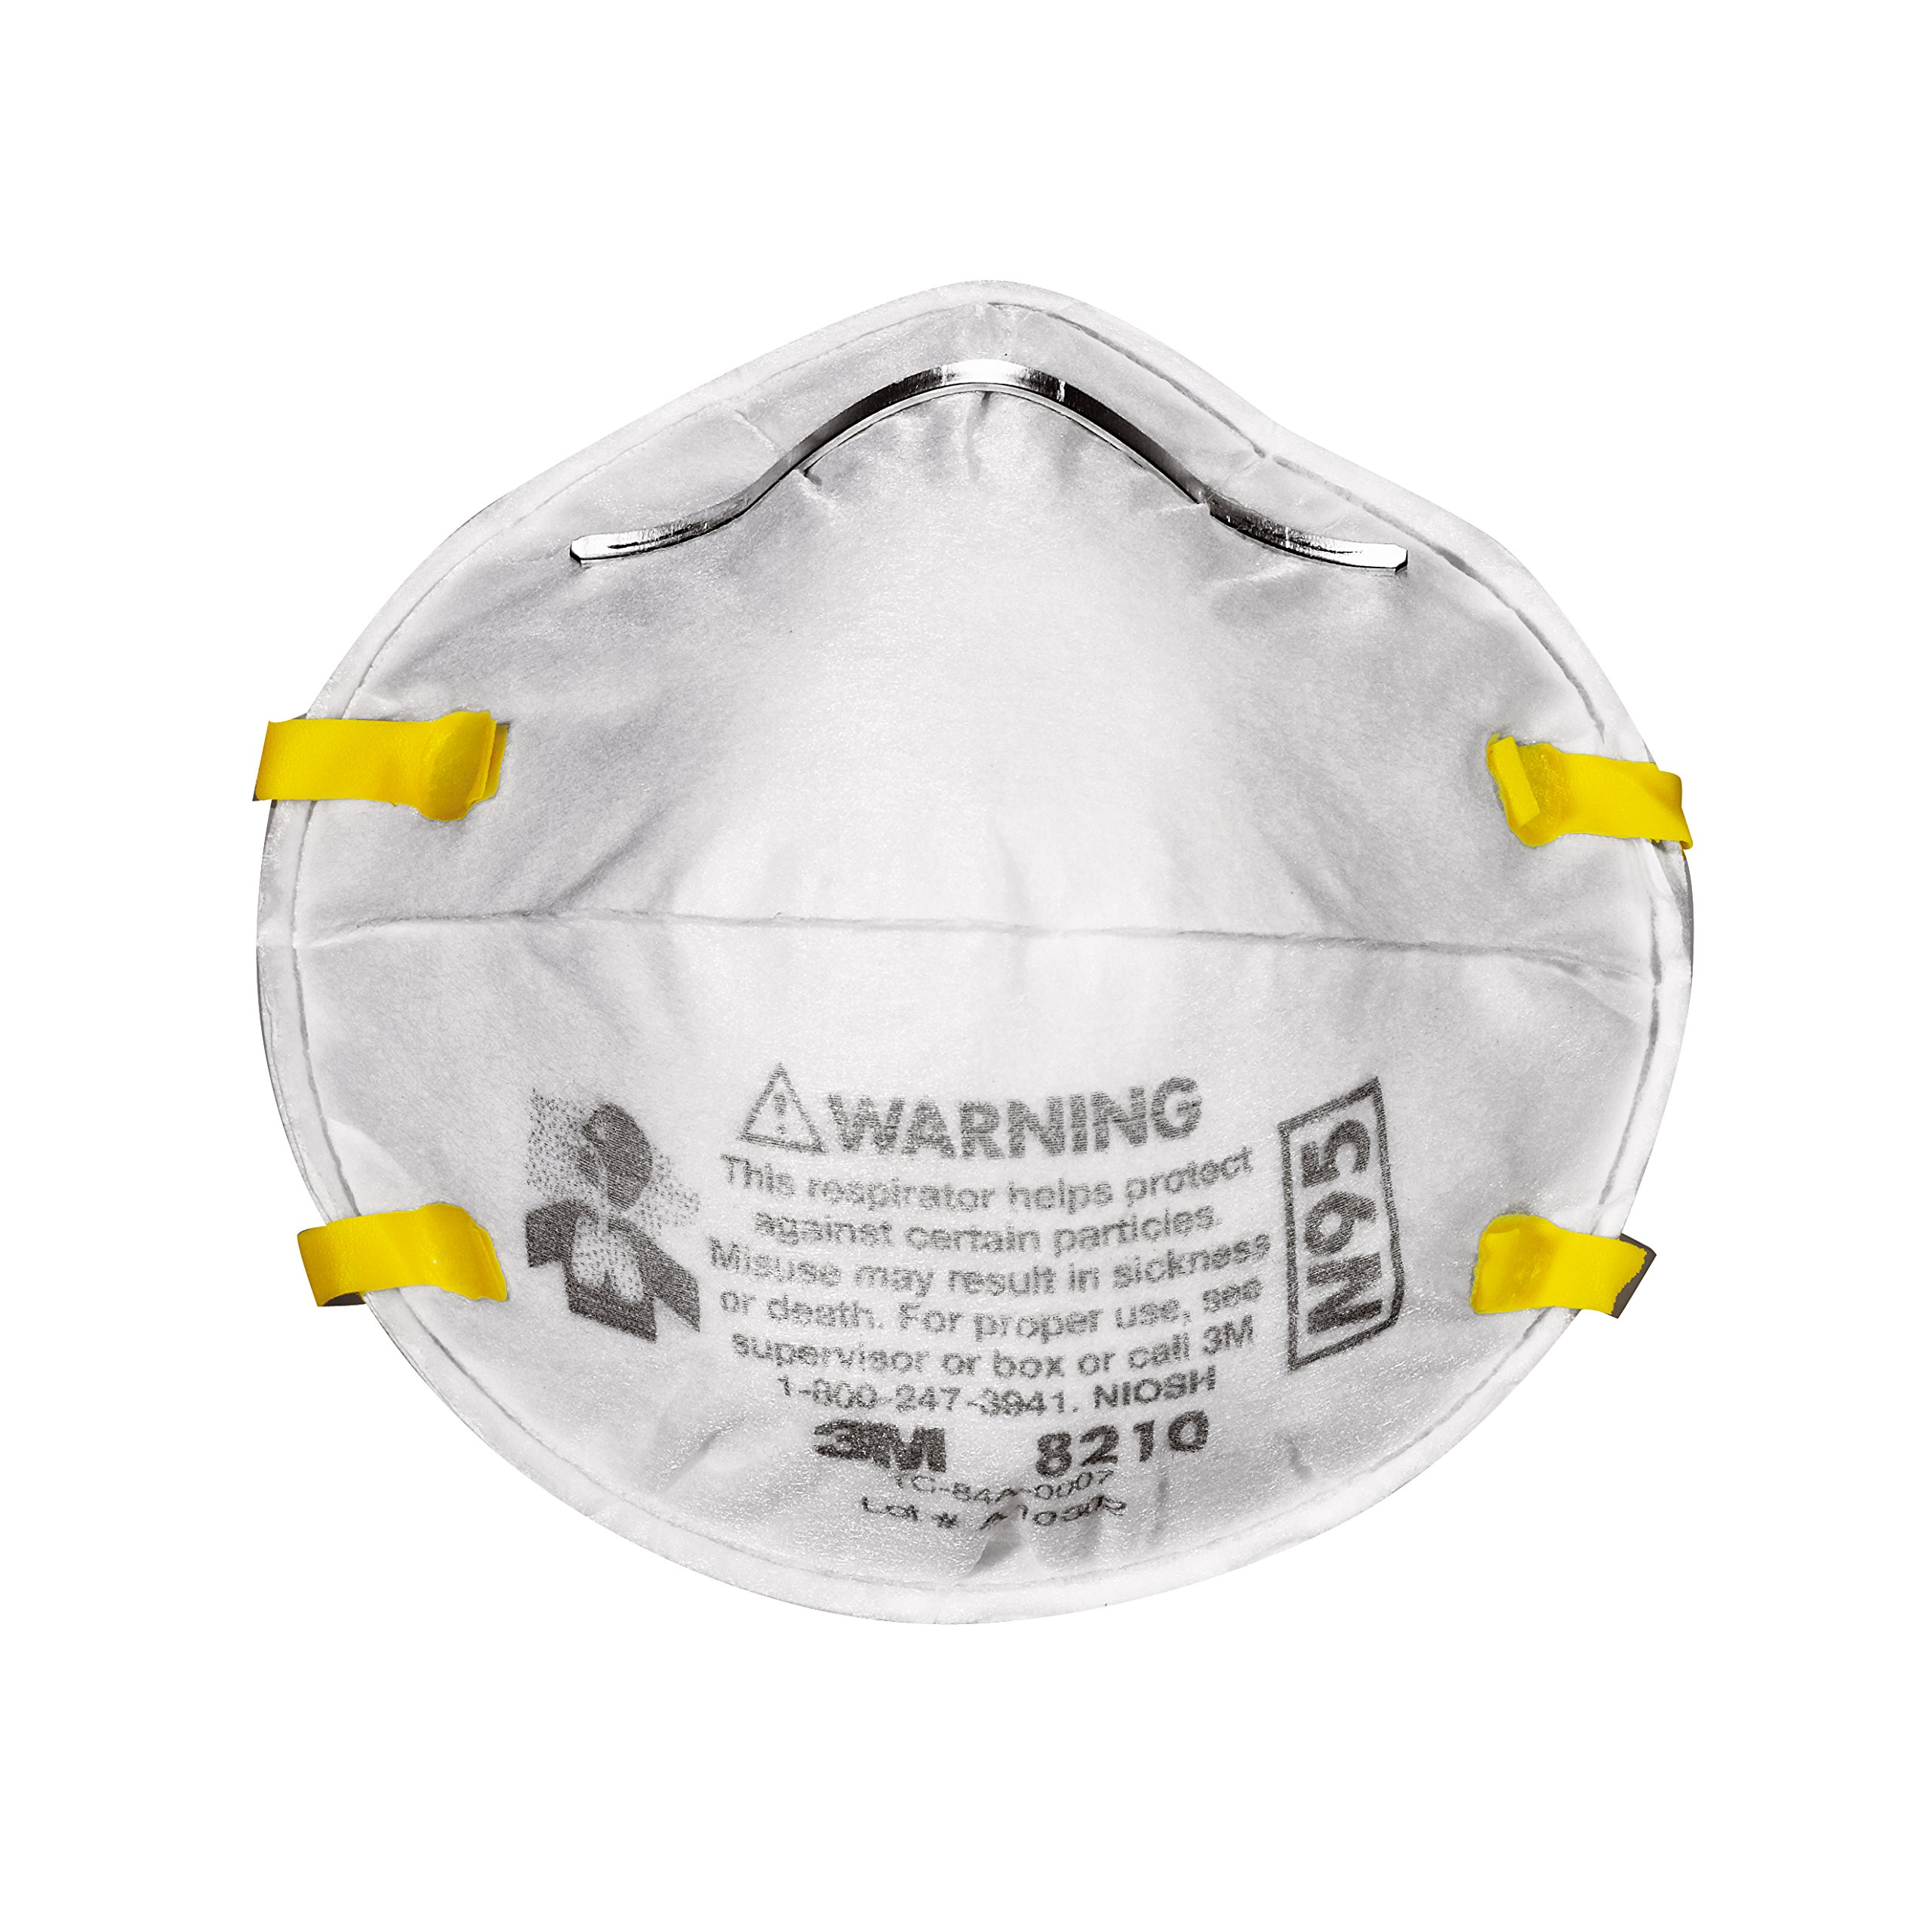 3M 8210PP20-DC Paint Sanding Dust Particulate Respirators, N95, 20-Pack by 3M (Image #2)